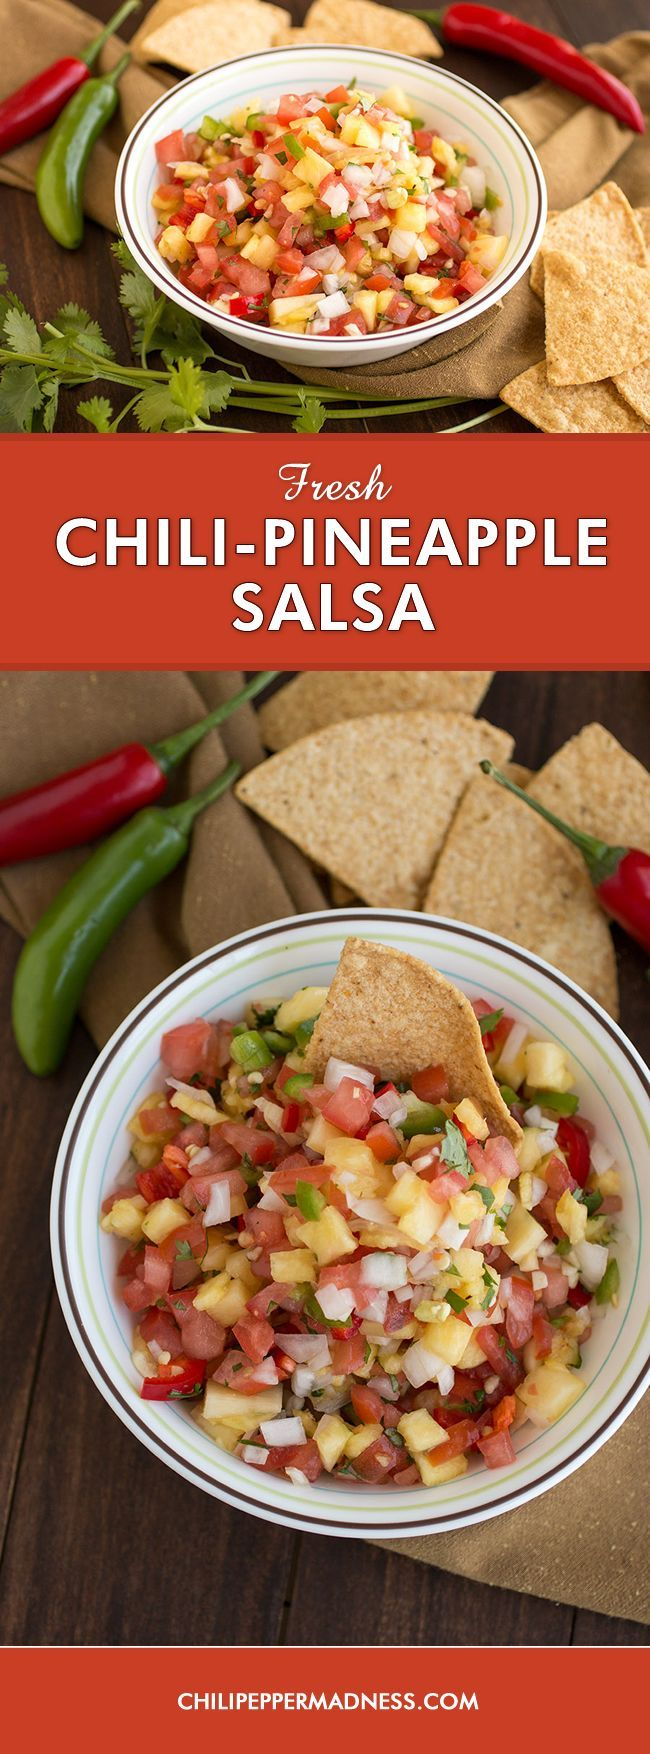 Fresh Chili-Pineapple Salsa - A quick and easy recipe for salsa made with sweet pineapple, juicy tomato and a variety of garden fresh chili peppers. Perfect as a healthy appetizer, snack, or as a topping for grilled meals.